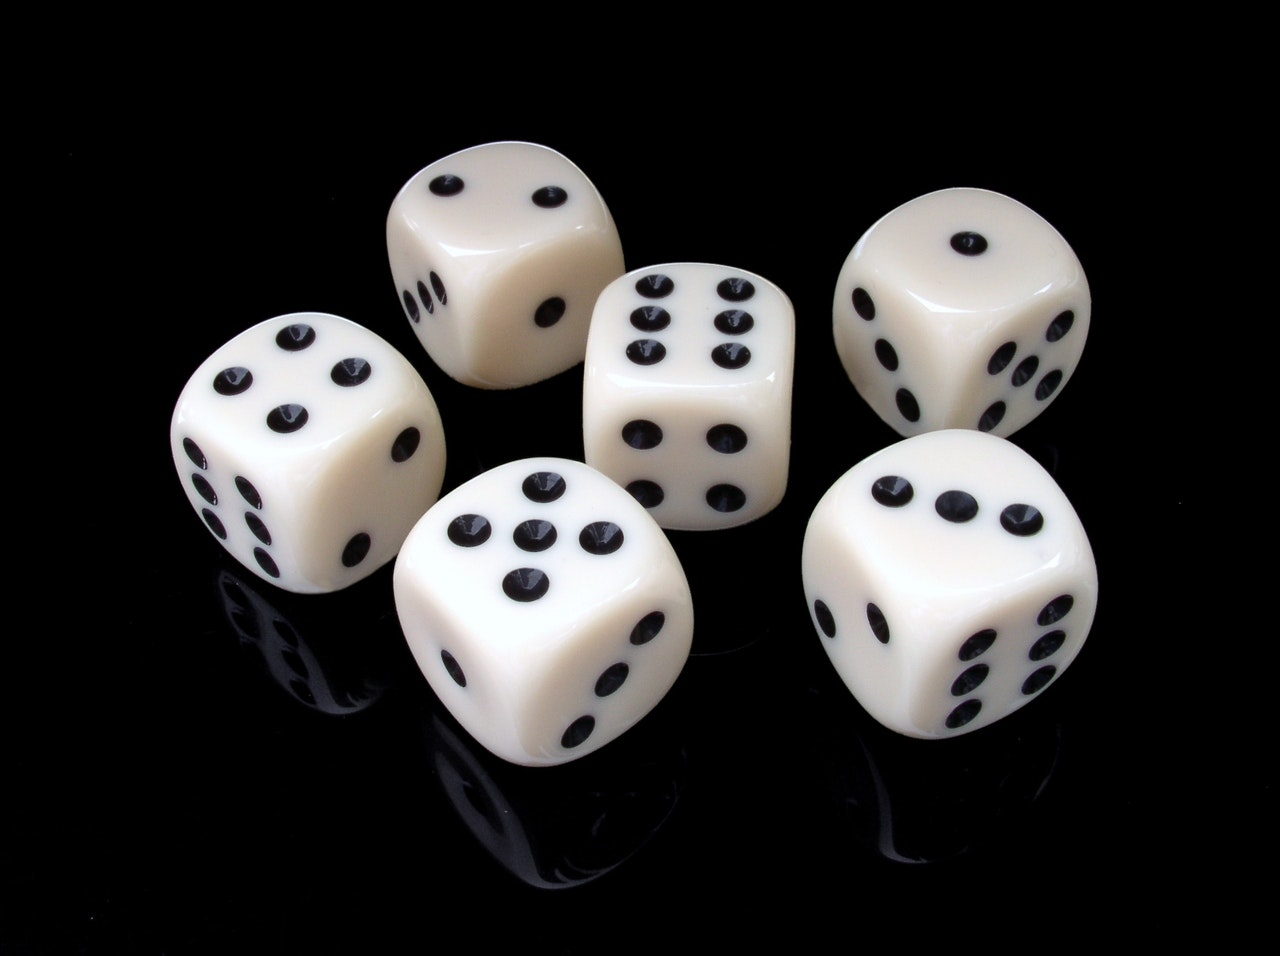 Six Dice representing the Six Forces